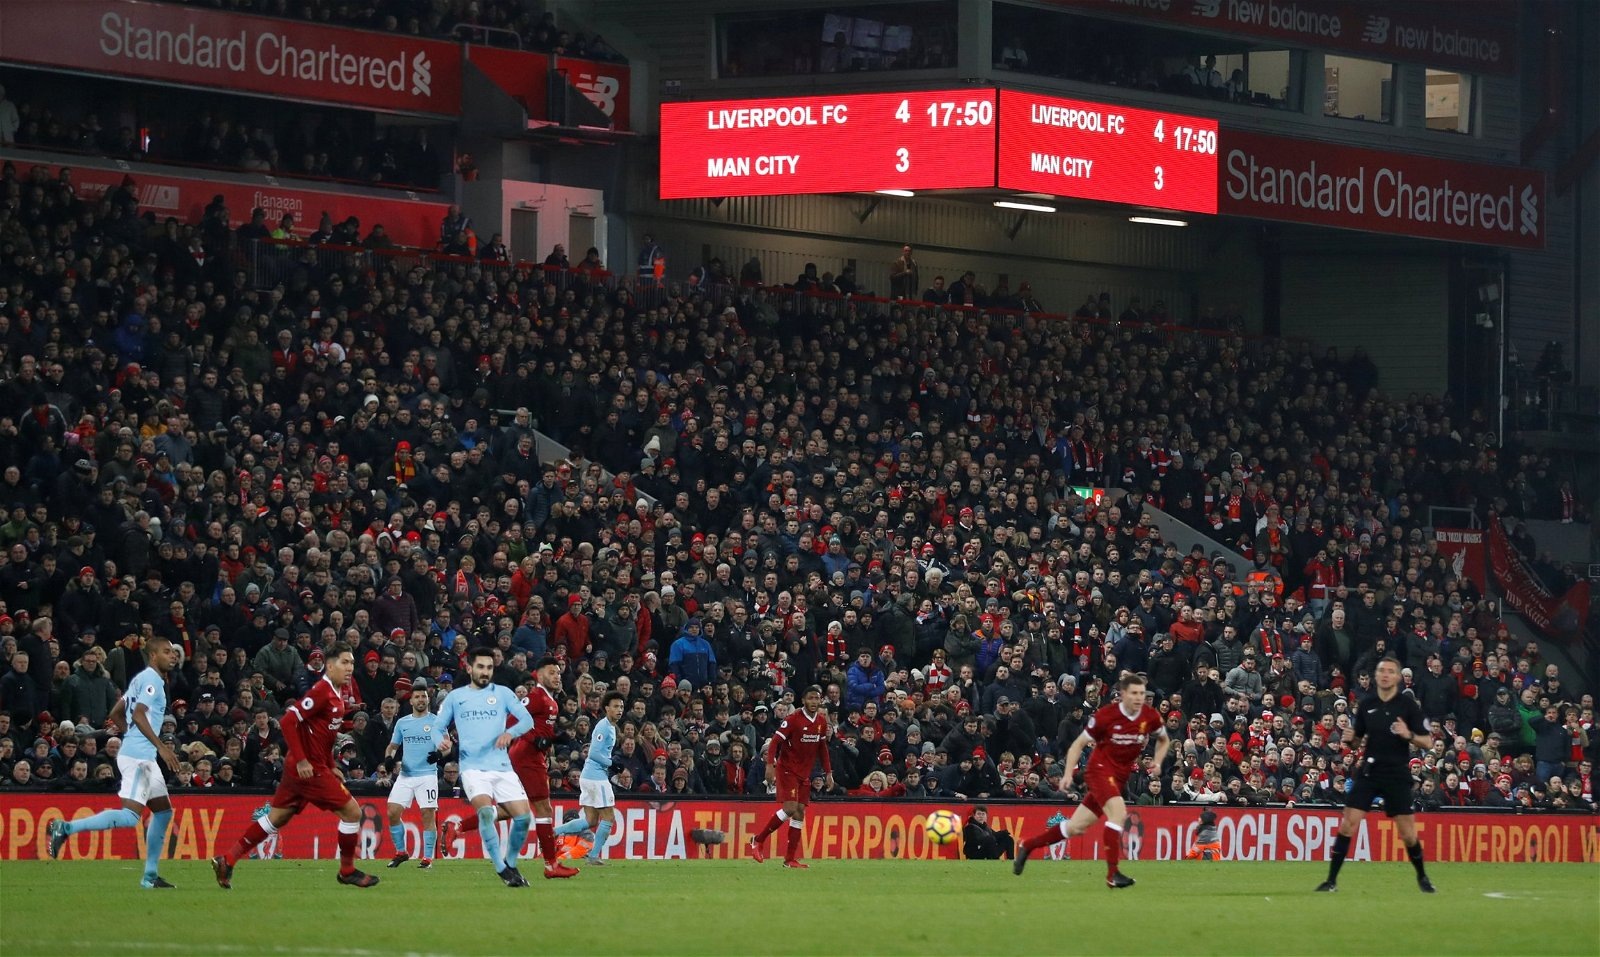 Liverpool's victory over Man City will spark a turning point